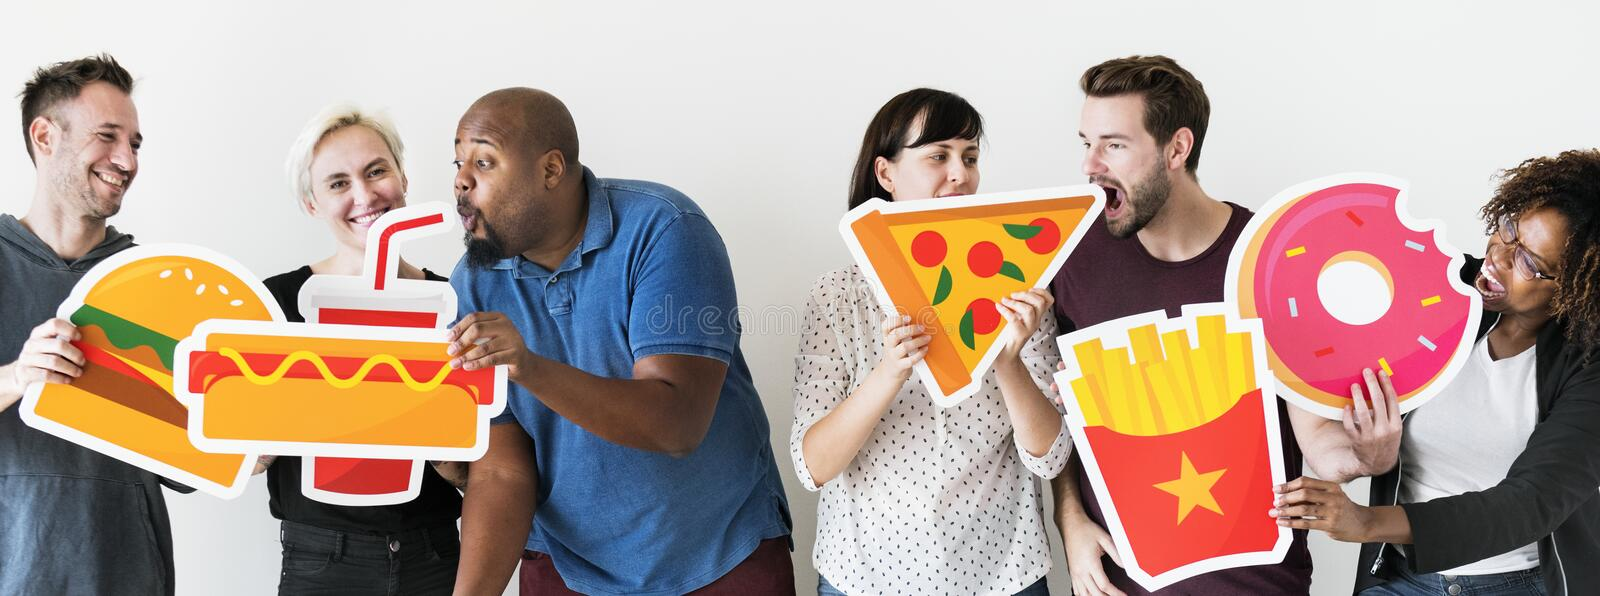 Diverse friends with food icons royalty free stock image